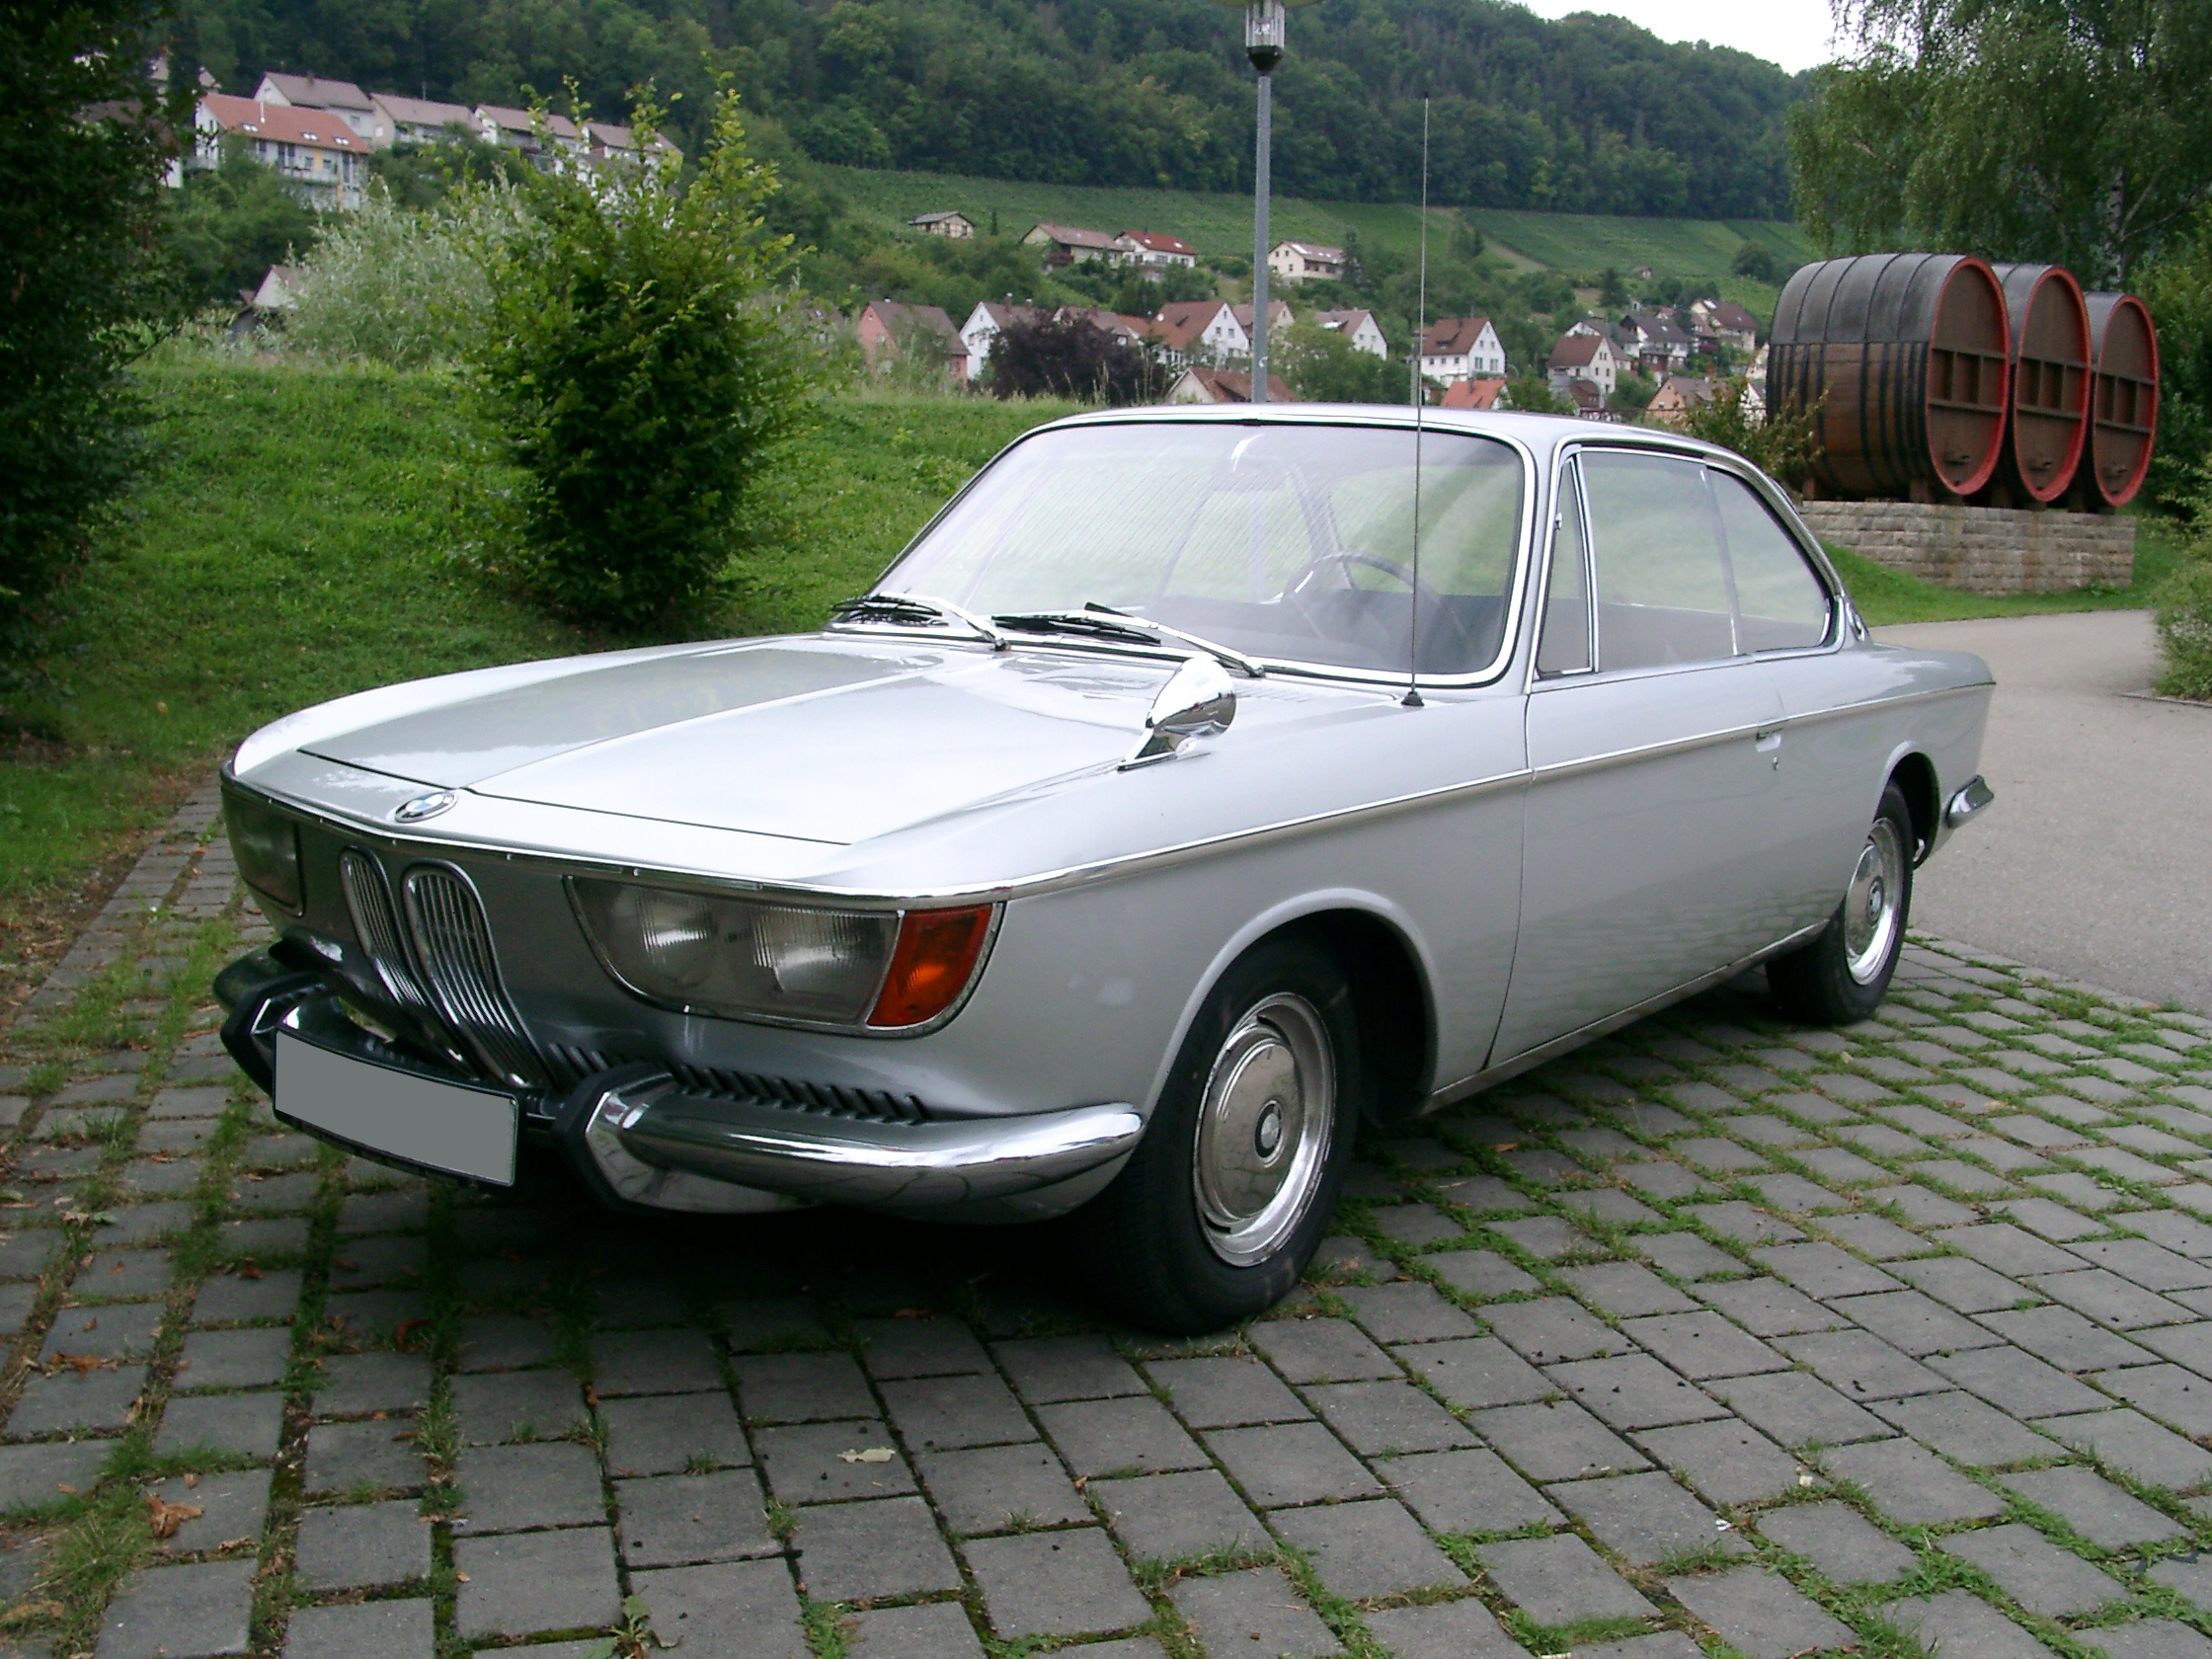 Bmw used Parts 2000c Free Download Image Of